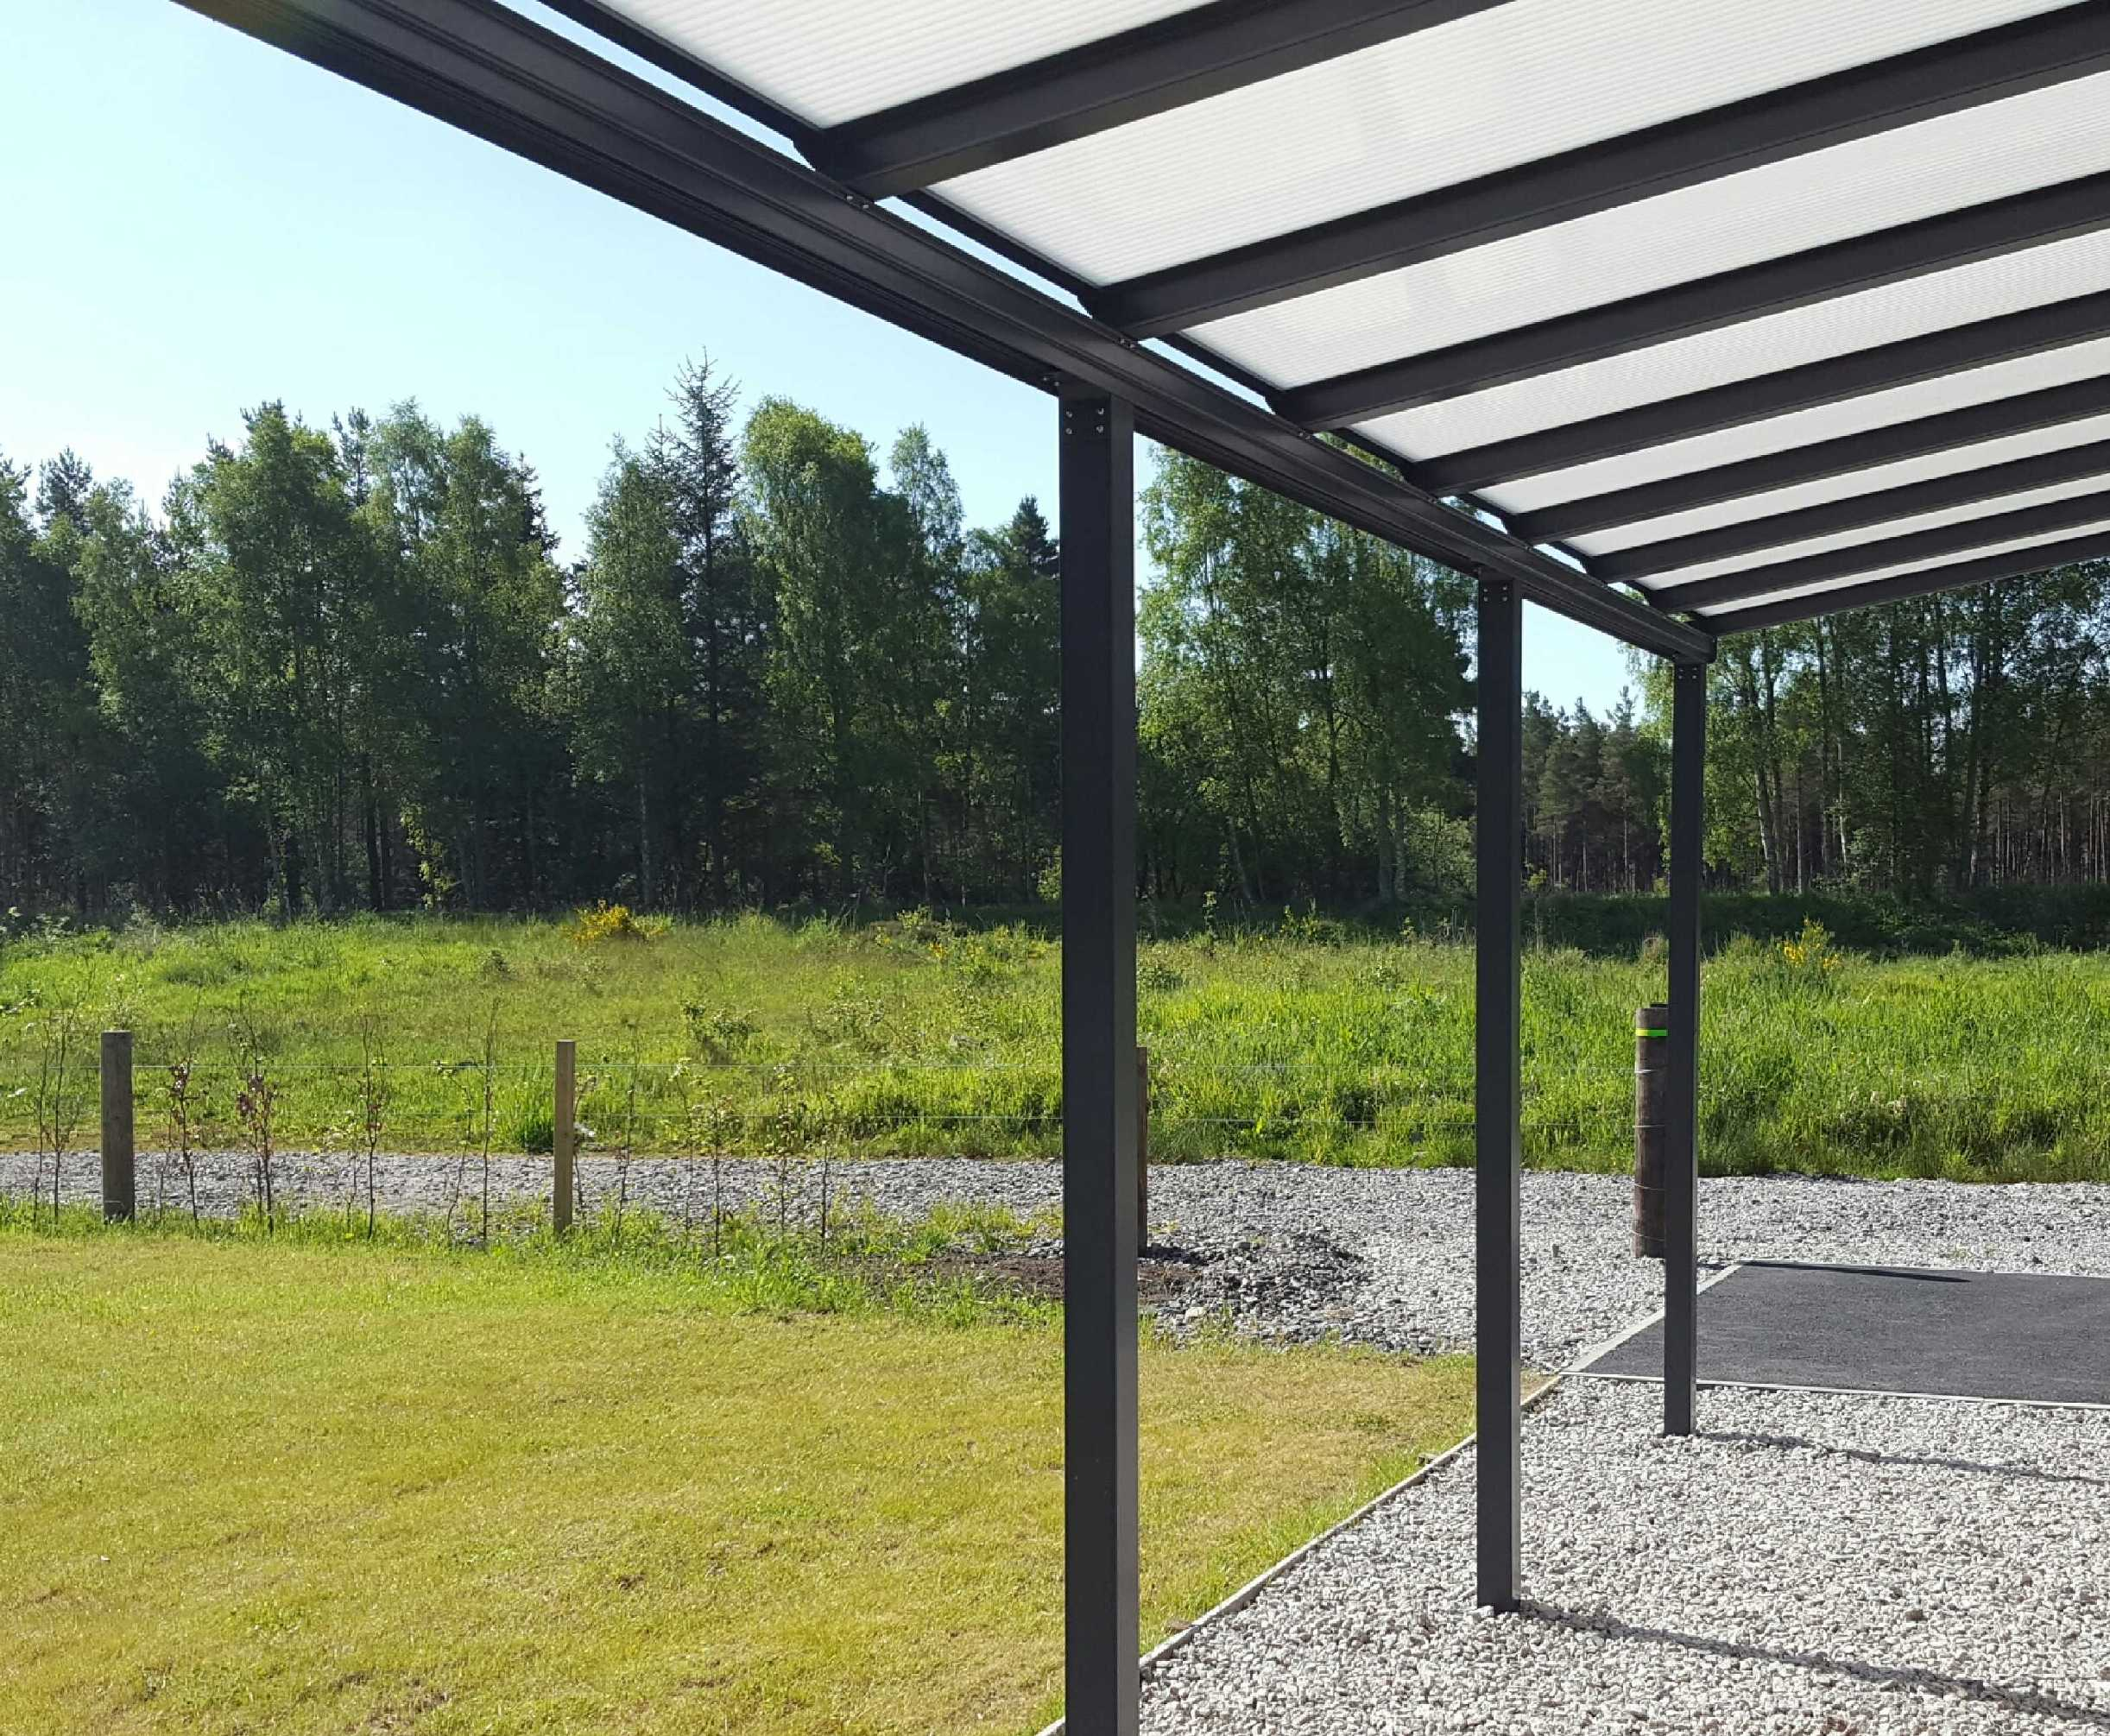 Omega Smart Lean-To Canopy, Anthracite Grey, 6mm Glass Clear Plate Polycarbonate Glazing - 9.1m (W) x 2.5m (P), (5) Supporting Posts